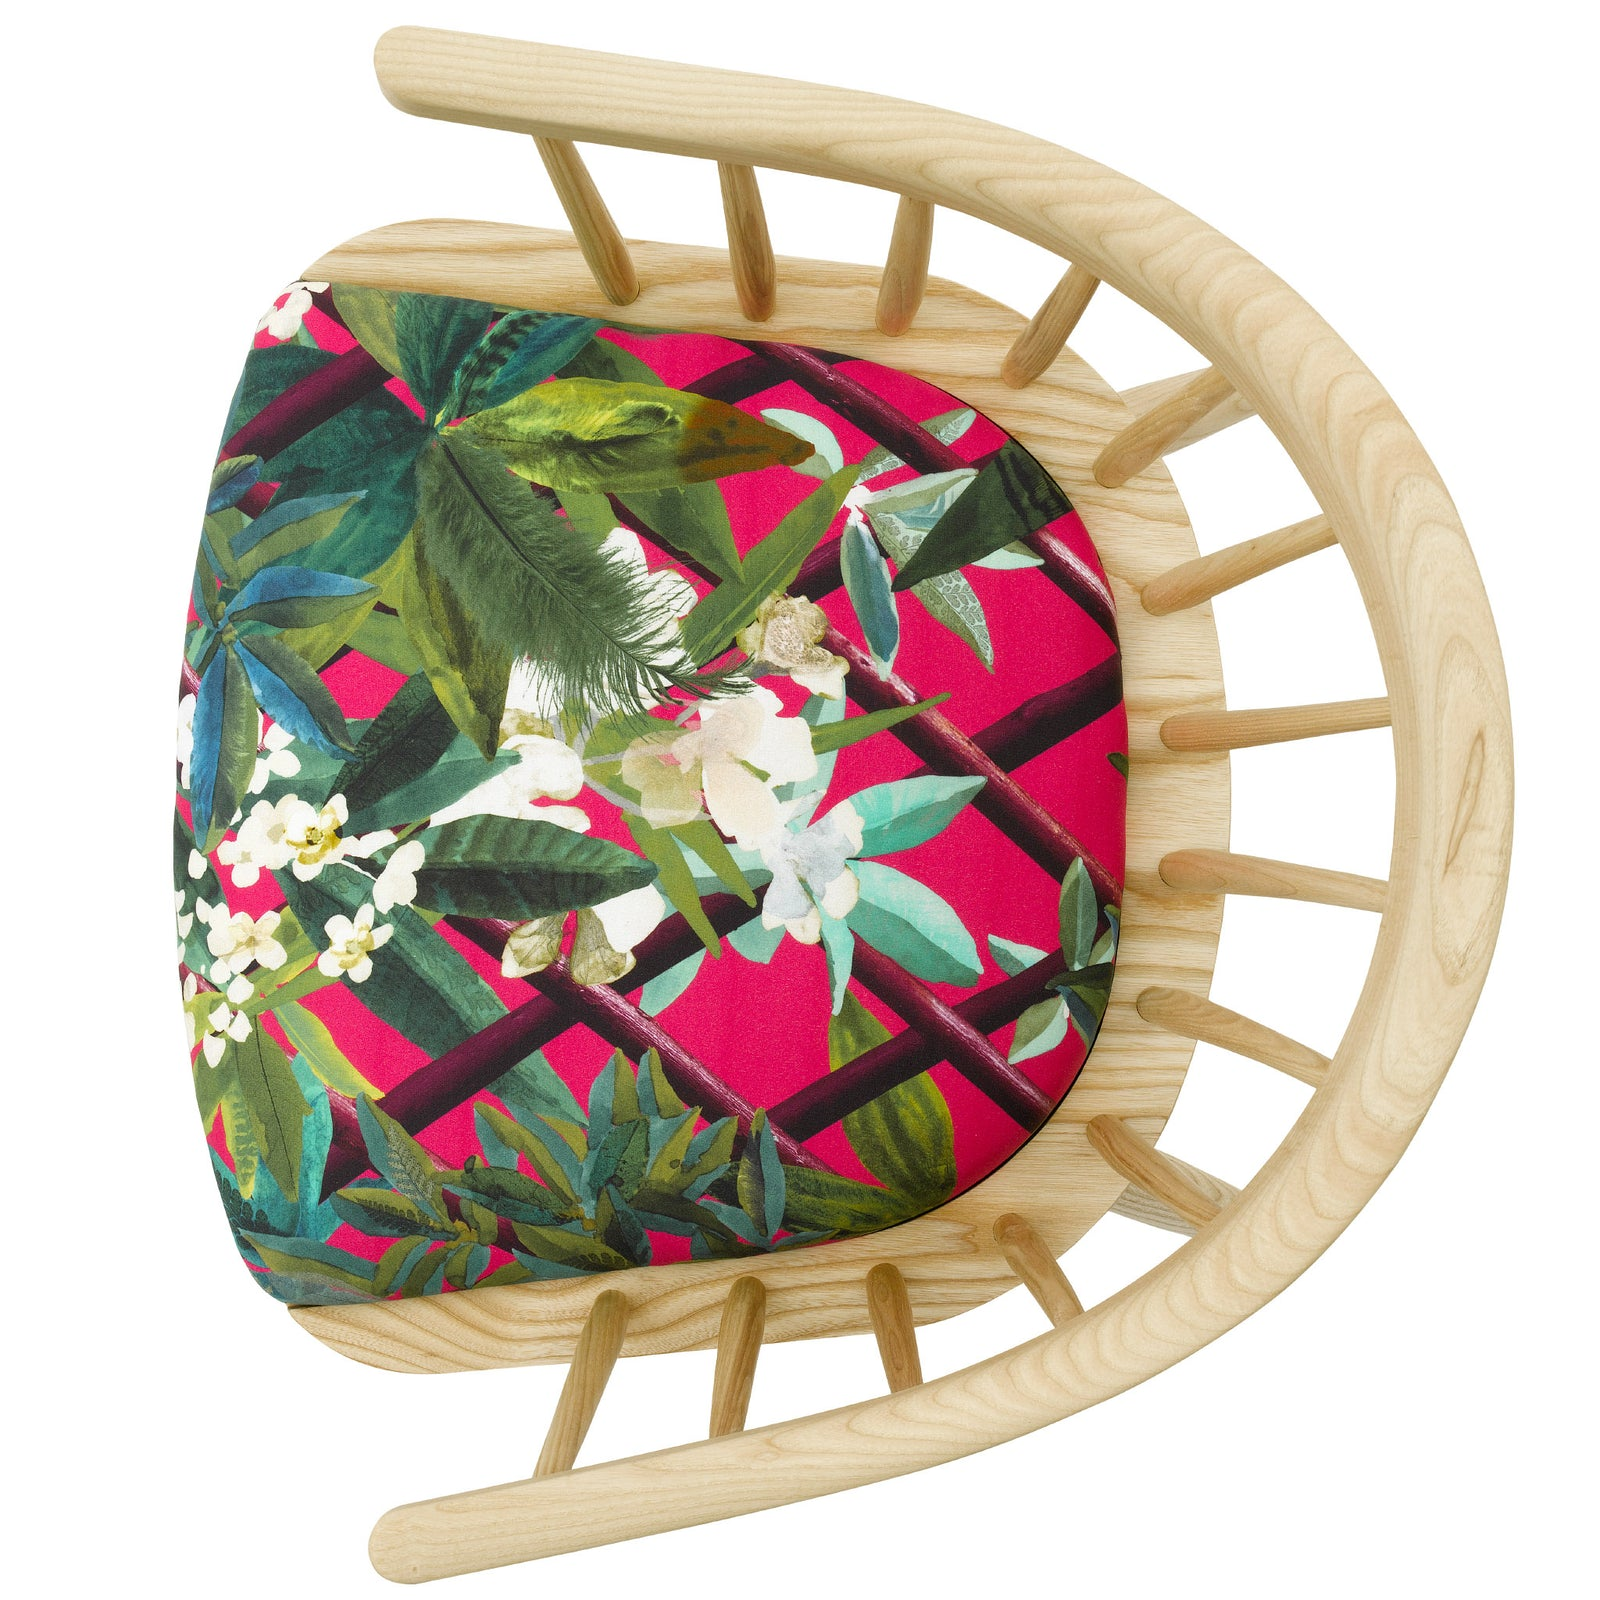 The HandmadeDarwin Armchair Upholstered in Canopy by Christian Lacroix